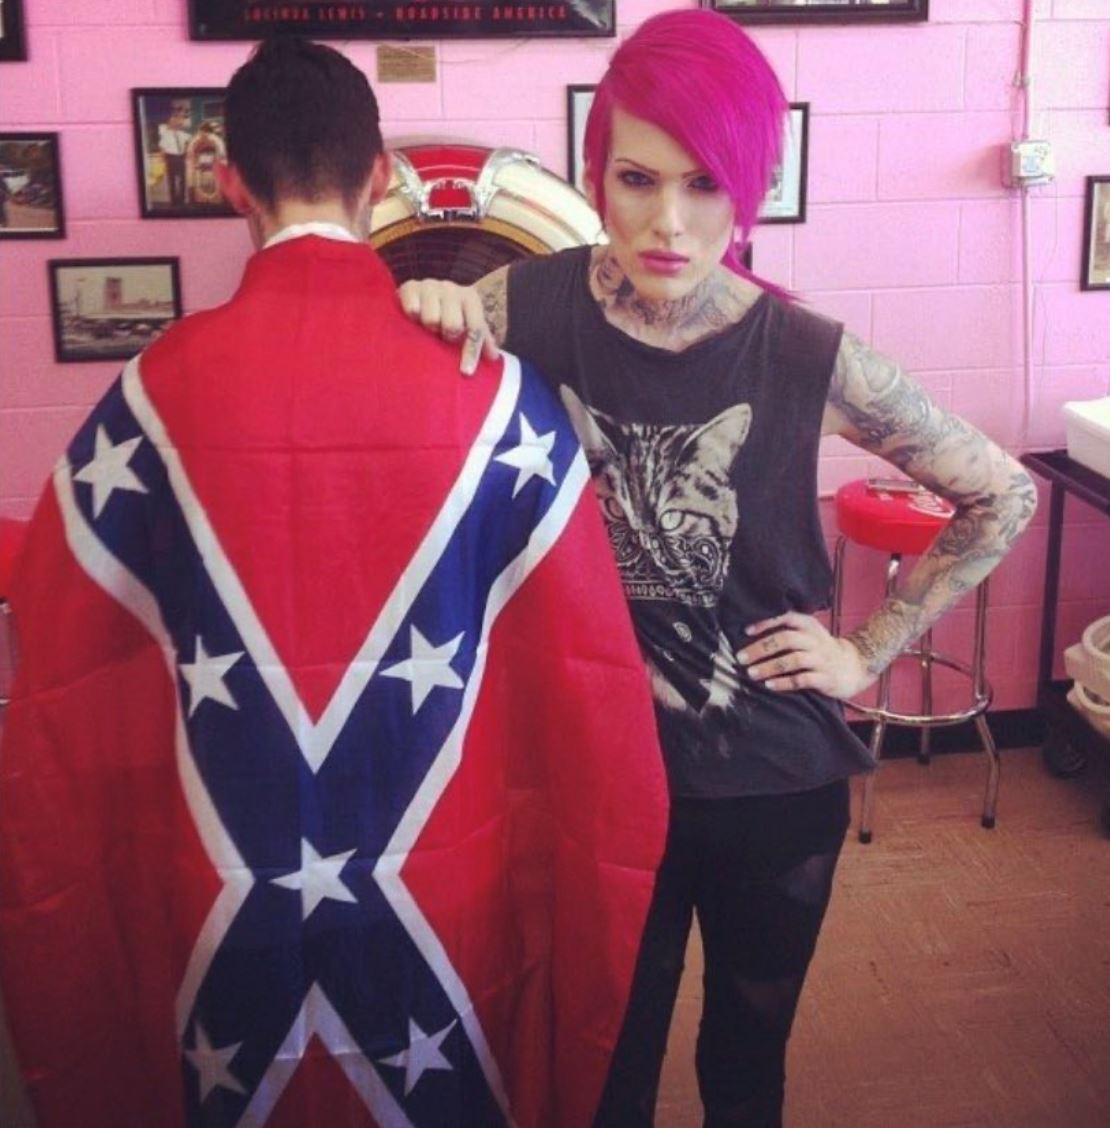 Jeffree Star poses next to fan wearing Confederate Flag